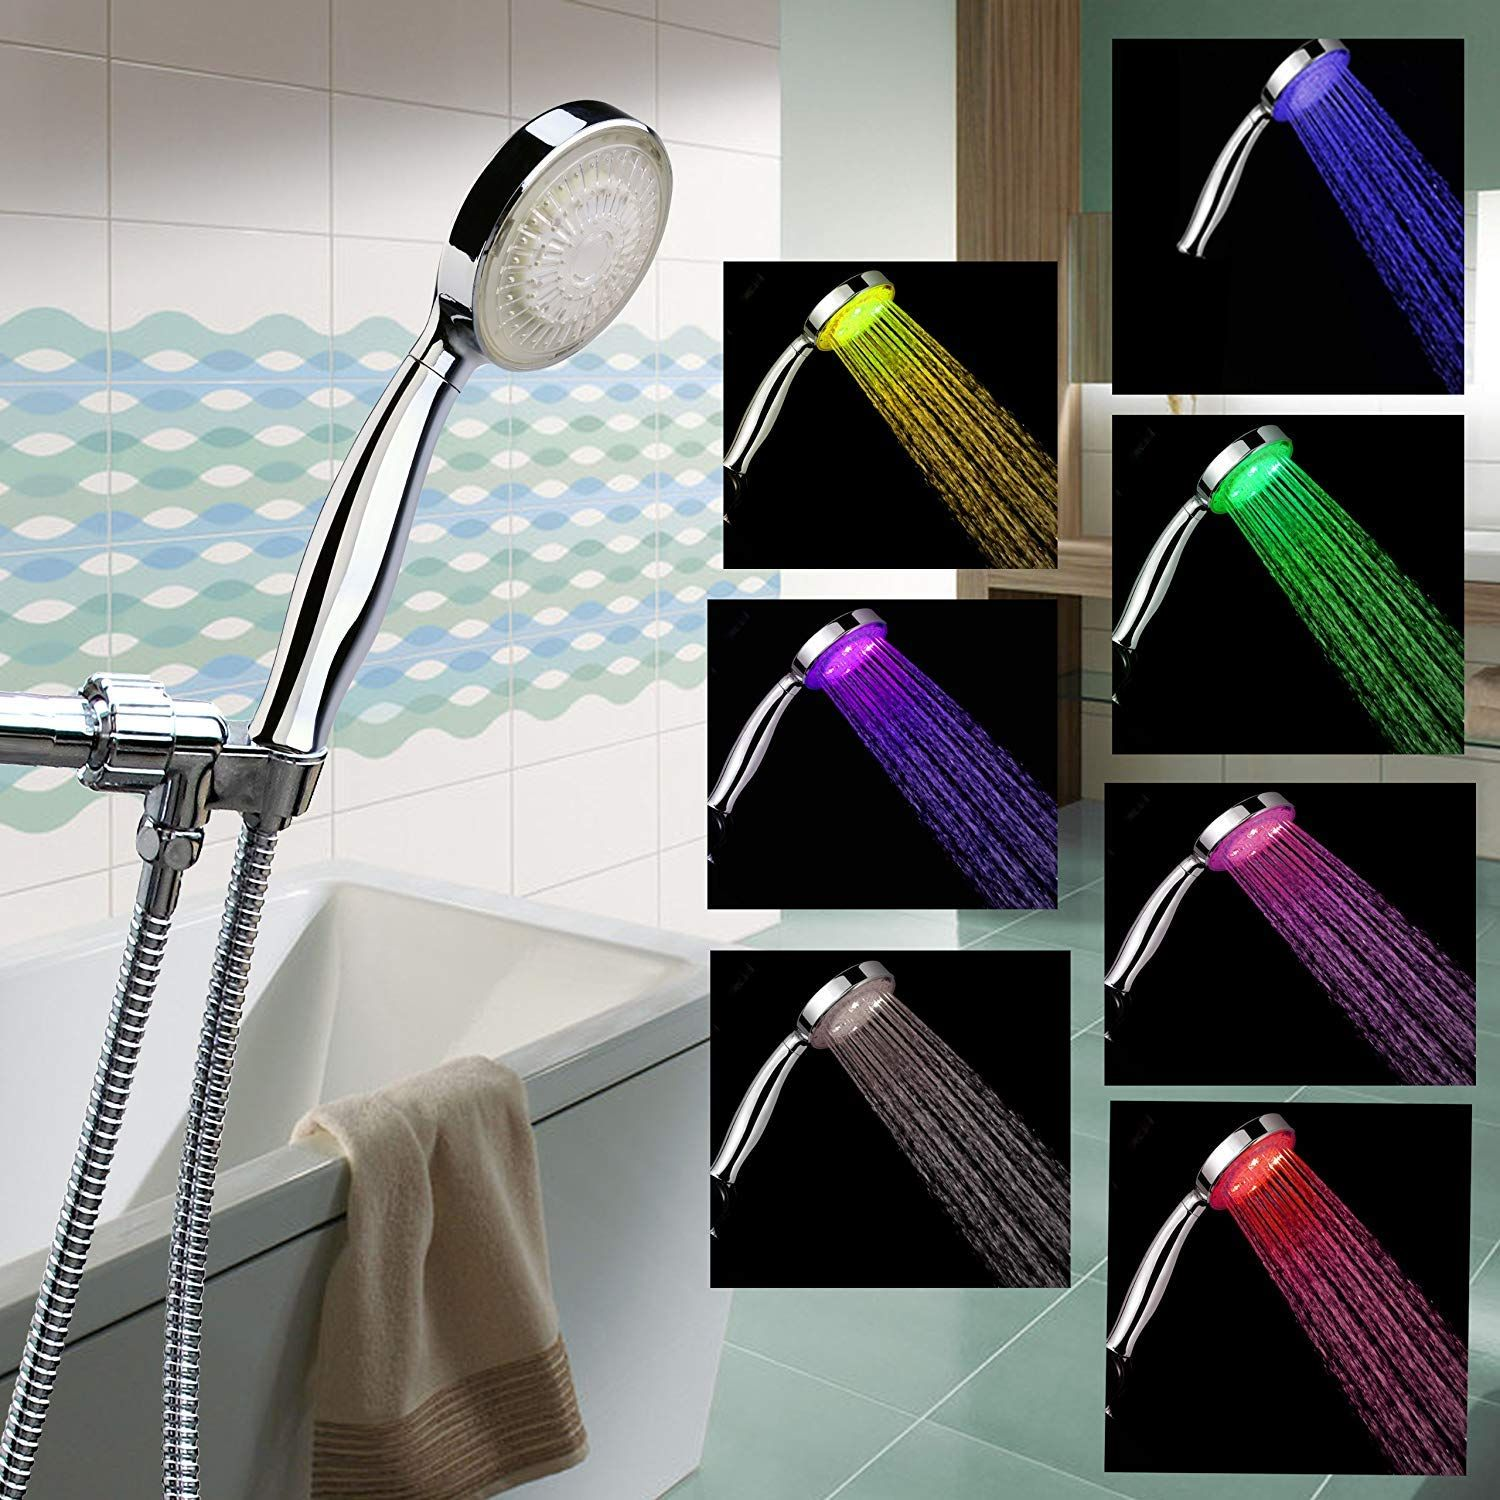 Awesome Color Changing Hand Held Shower Head With Stainless Steel Shower Hose And Can Be Fitted In Minutes Led Shower Head Shower Head Reviews Shower Heads